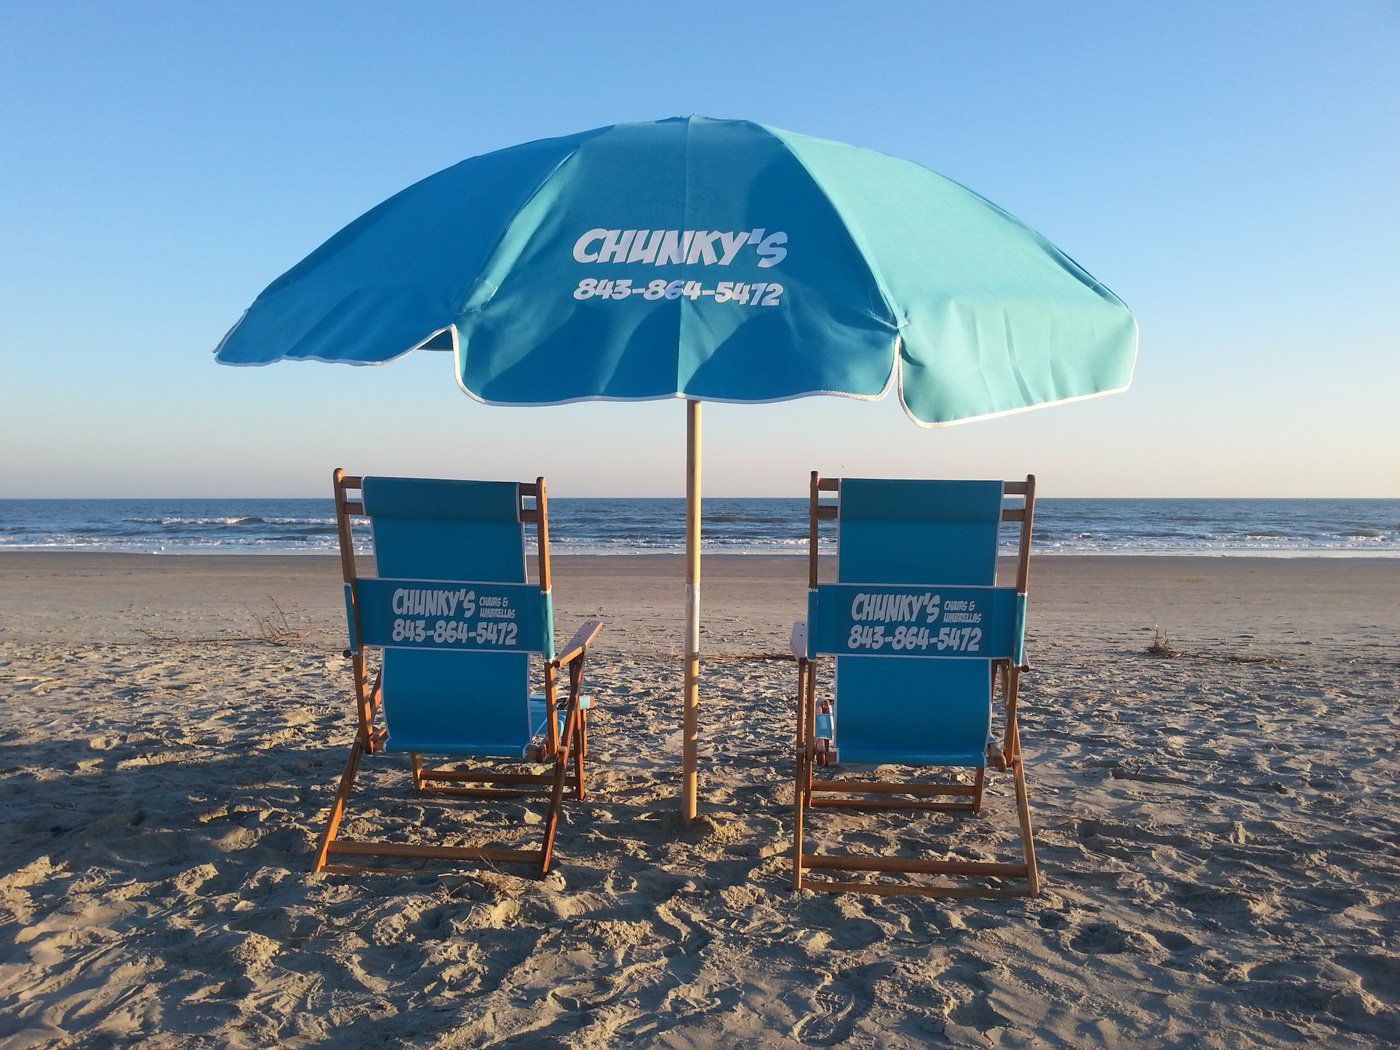 beach chair rental isle of palms shower with back and armrests chunky s chairs umbrellas umbrella rentals adult